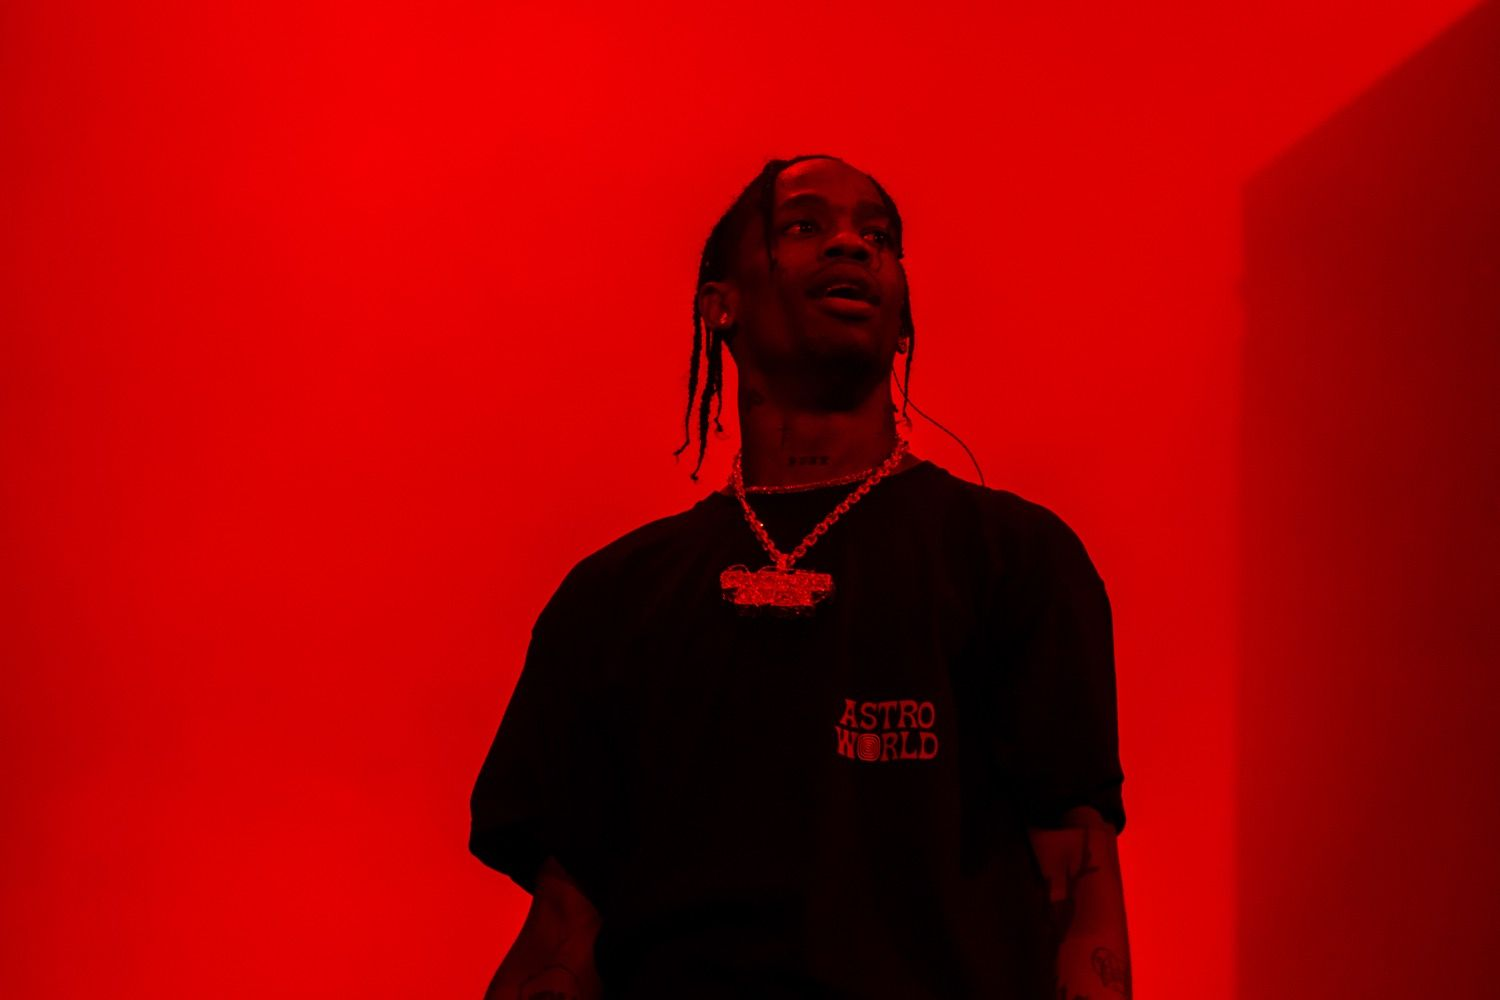 Travis Scott donates festival merch sales to Planned Parenthood